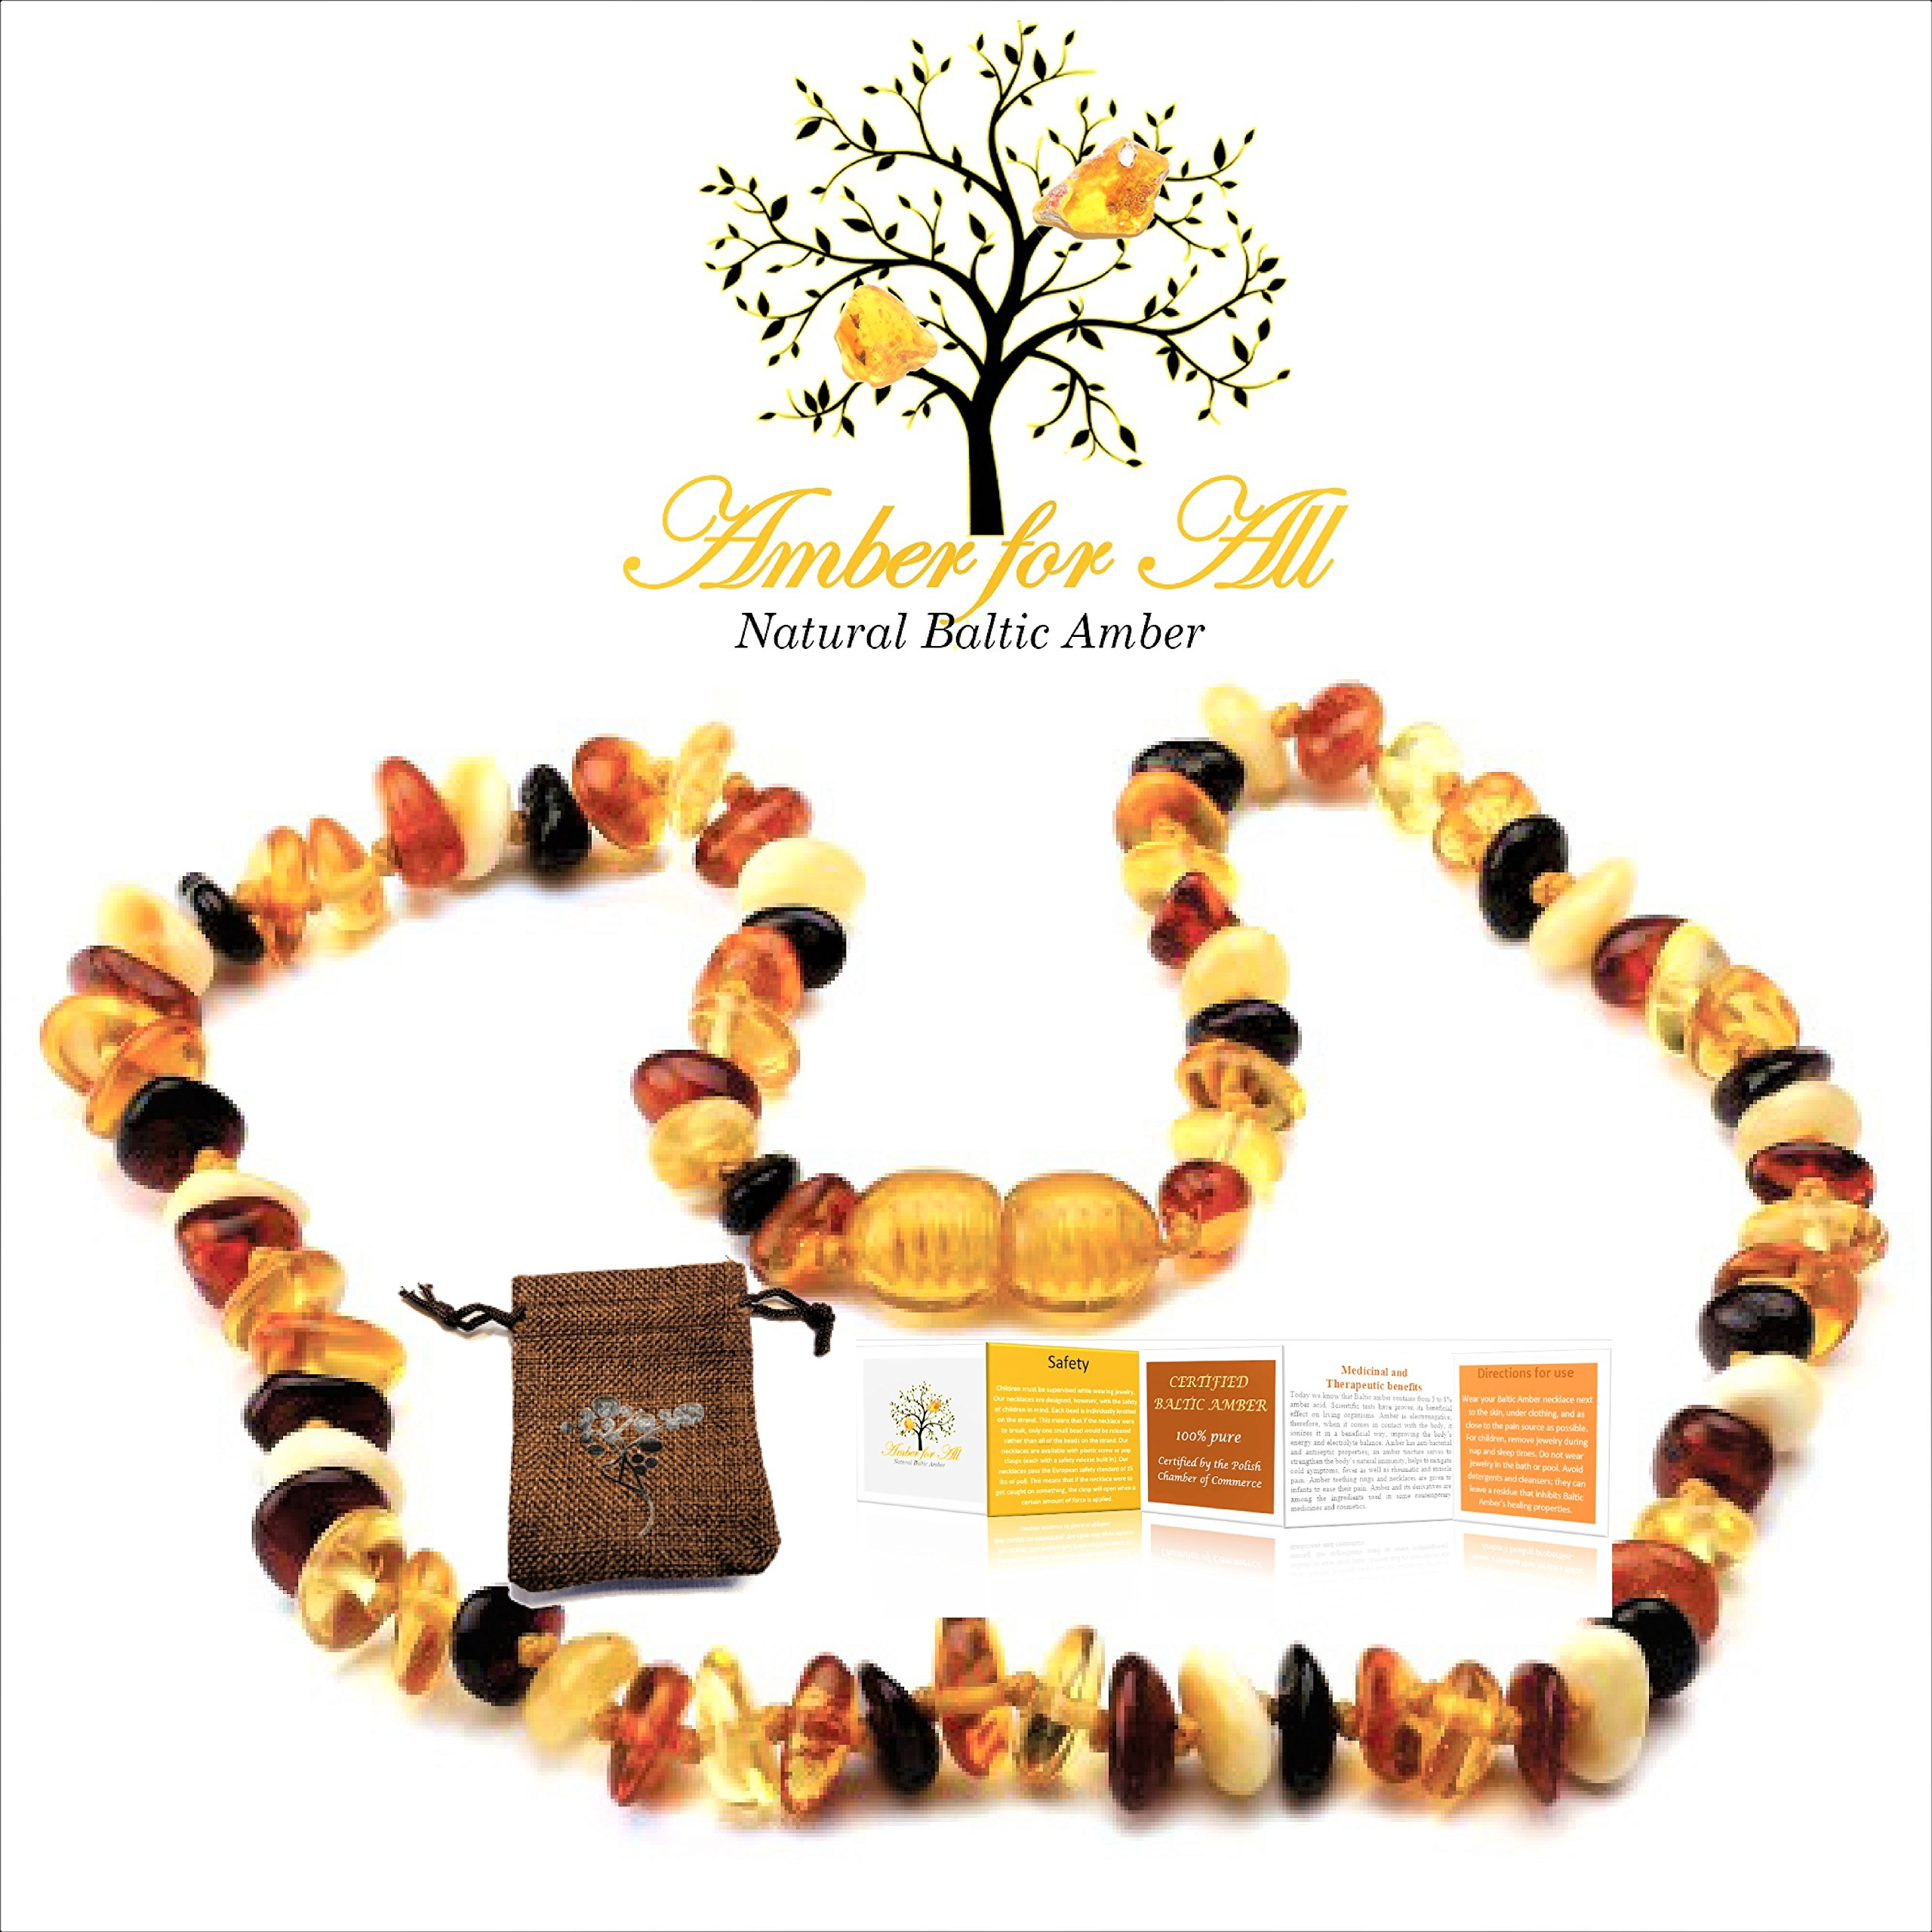 Baltic Amber Teething Necklace – reduces teething pain, drooling, inflammation – Certificates and Guarantees given – Unisex design – 13in (32cm) – polished mixed colors